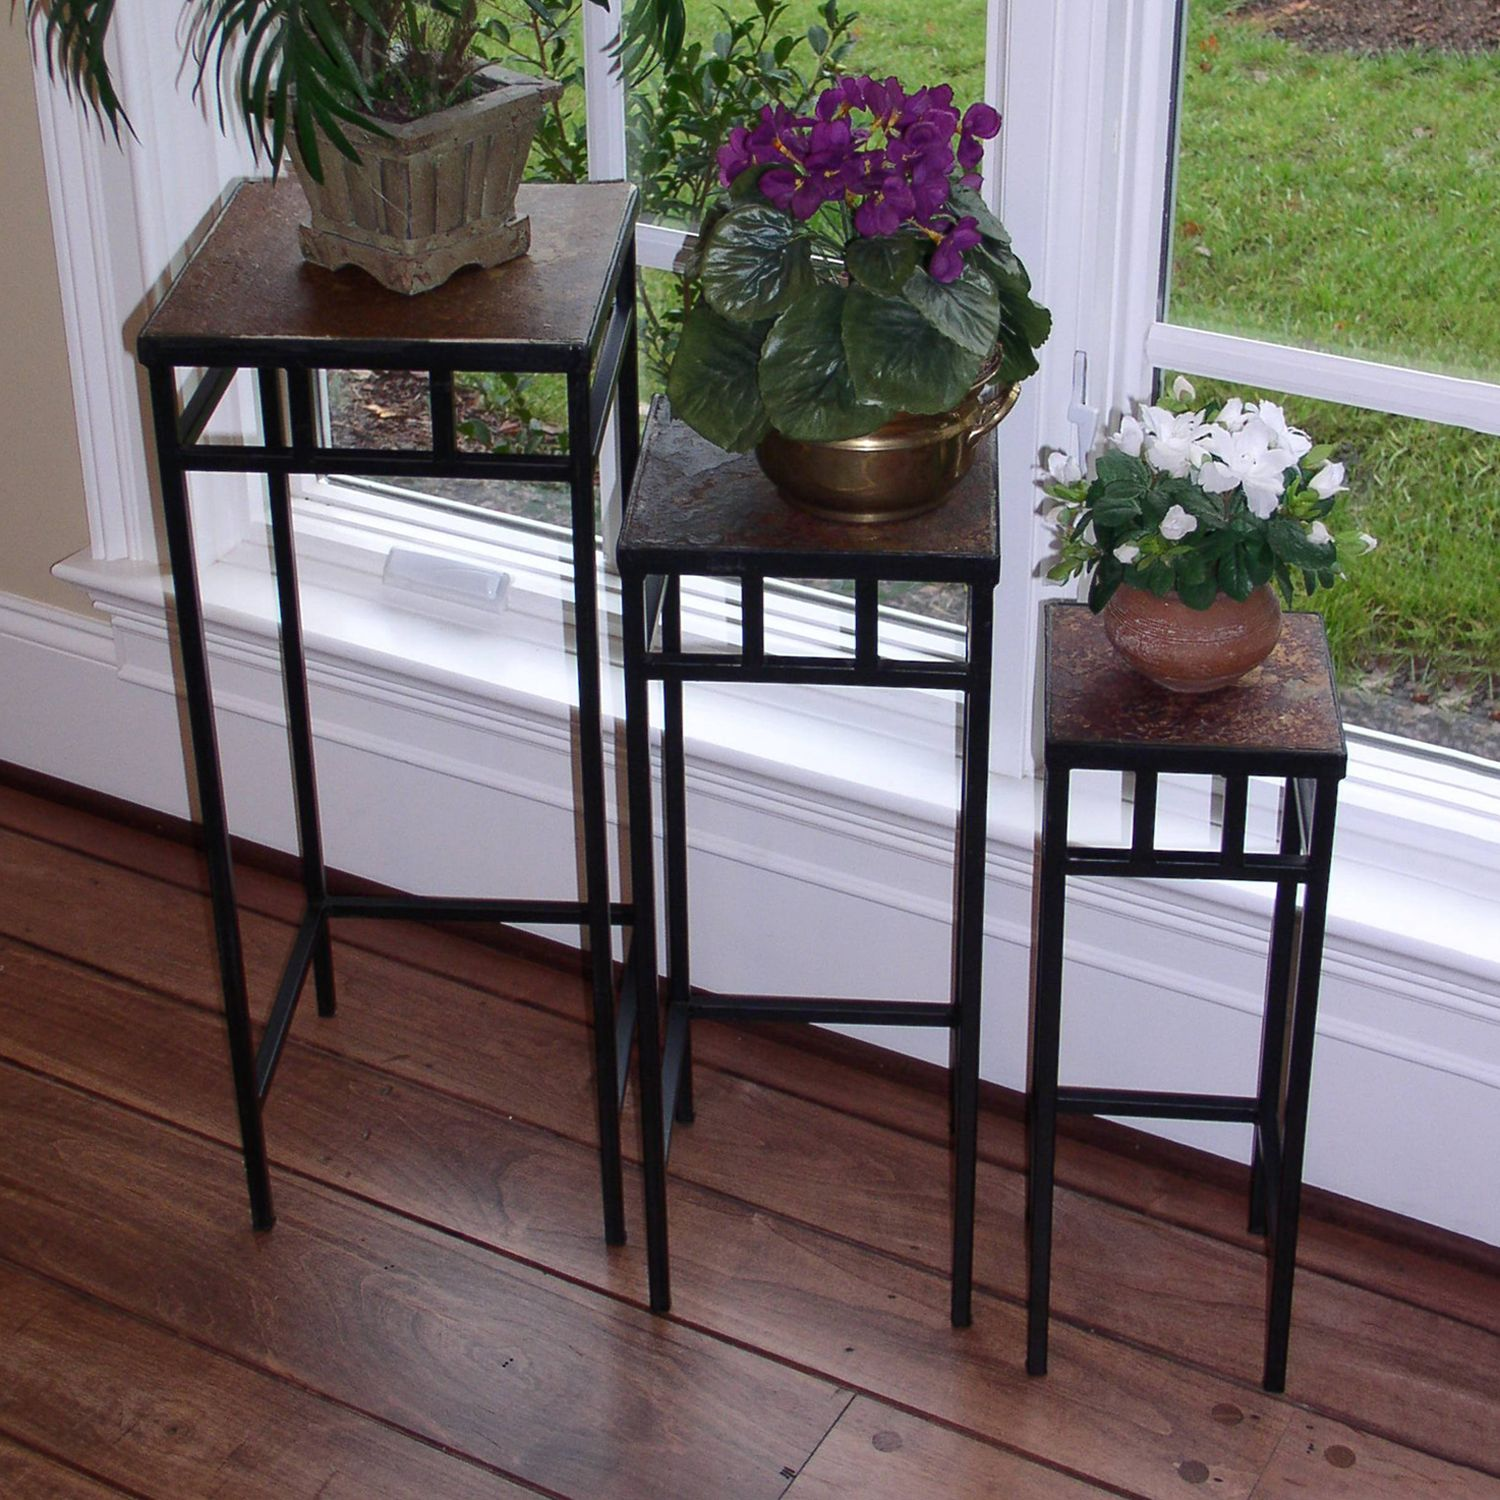 Square Plant Stand Set   Outdoor